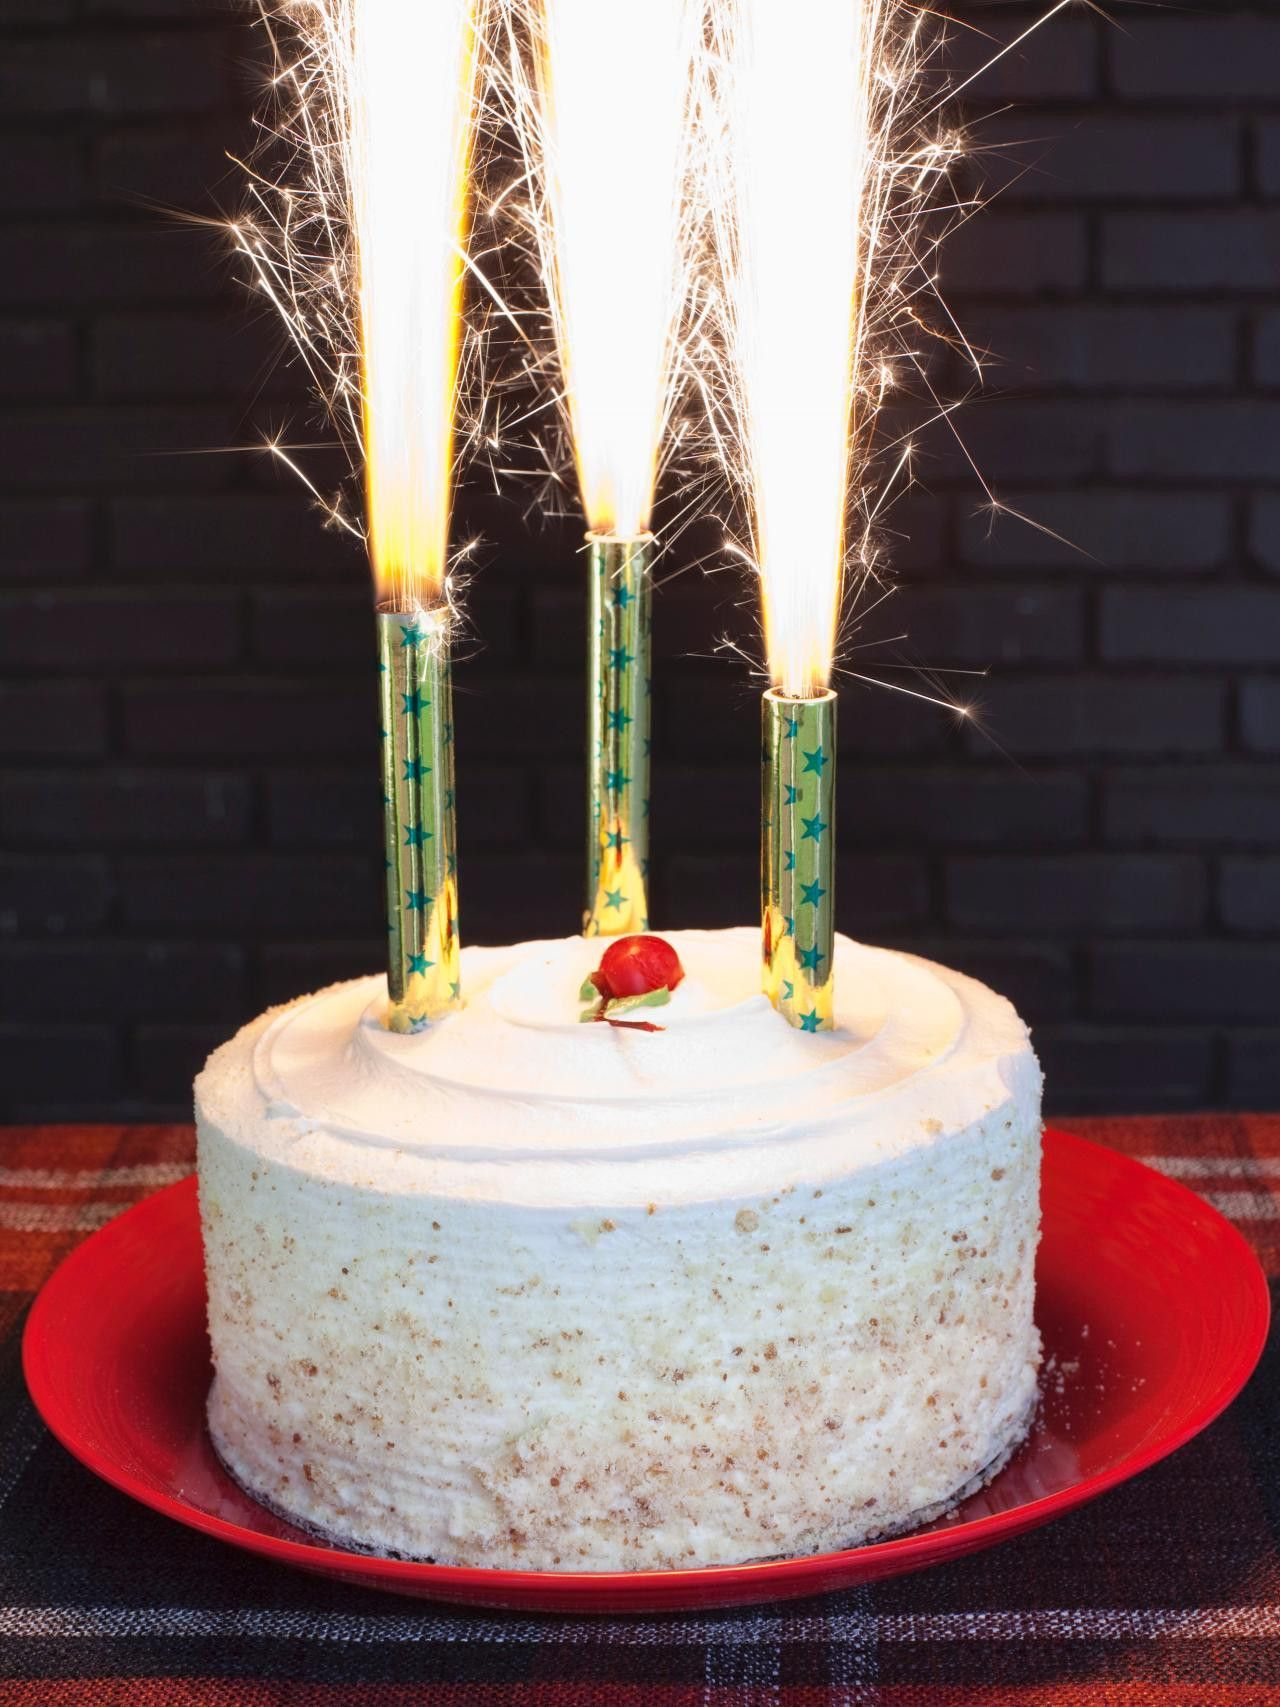 Phenomenal Cake Champagne Bottle Sparklers Indoor Safe Large Birthday Candle Funny Birthday Cards Online Sheoxdamsfinfo